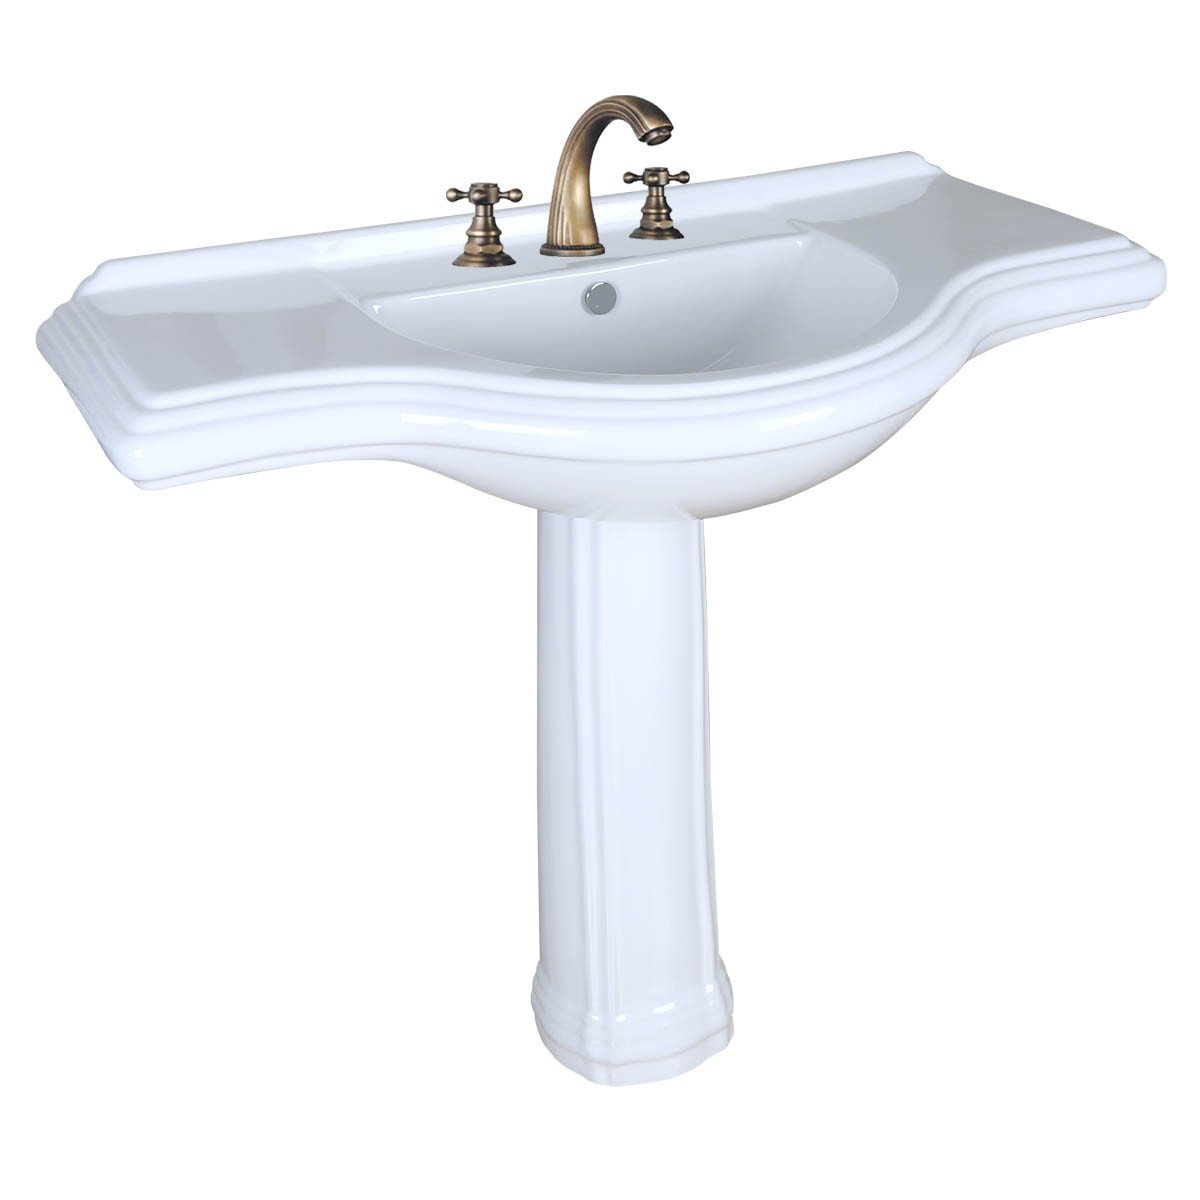 Pedestal Sink Extra Large White Vitreous China 8